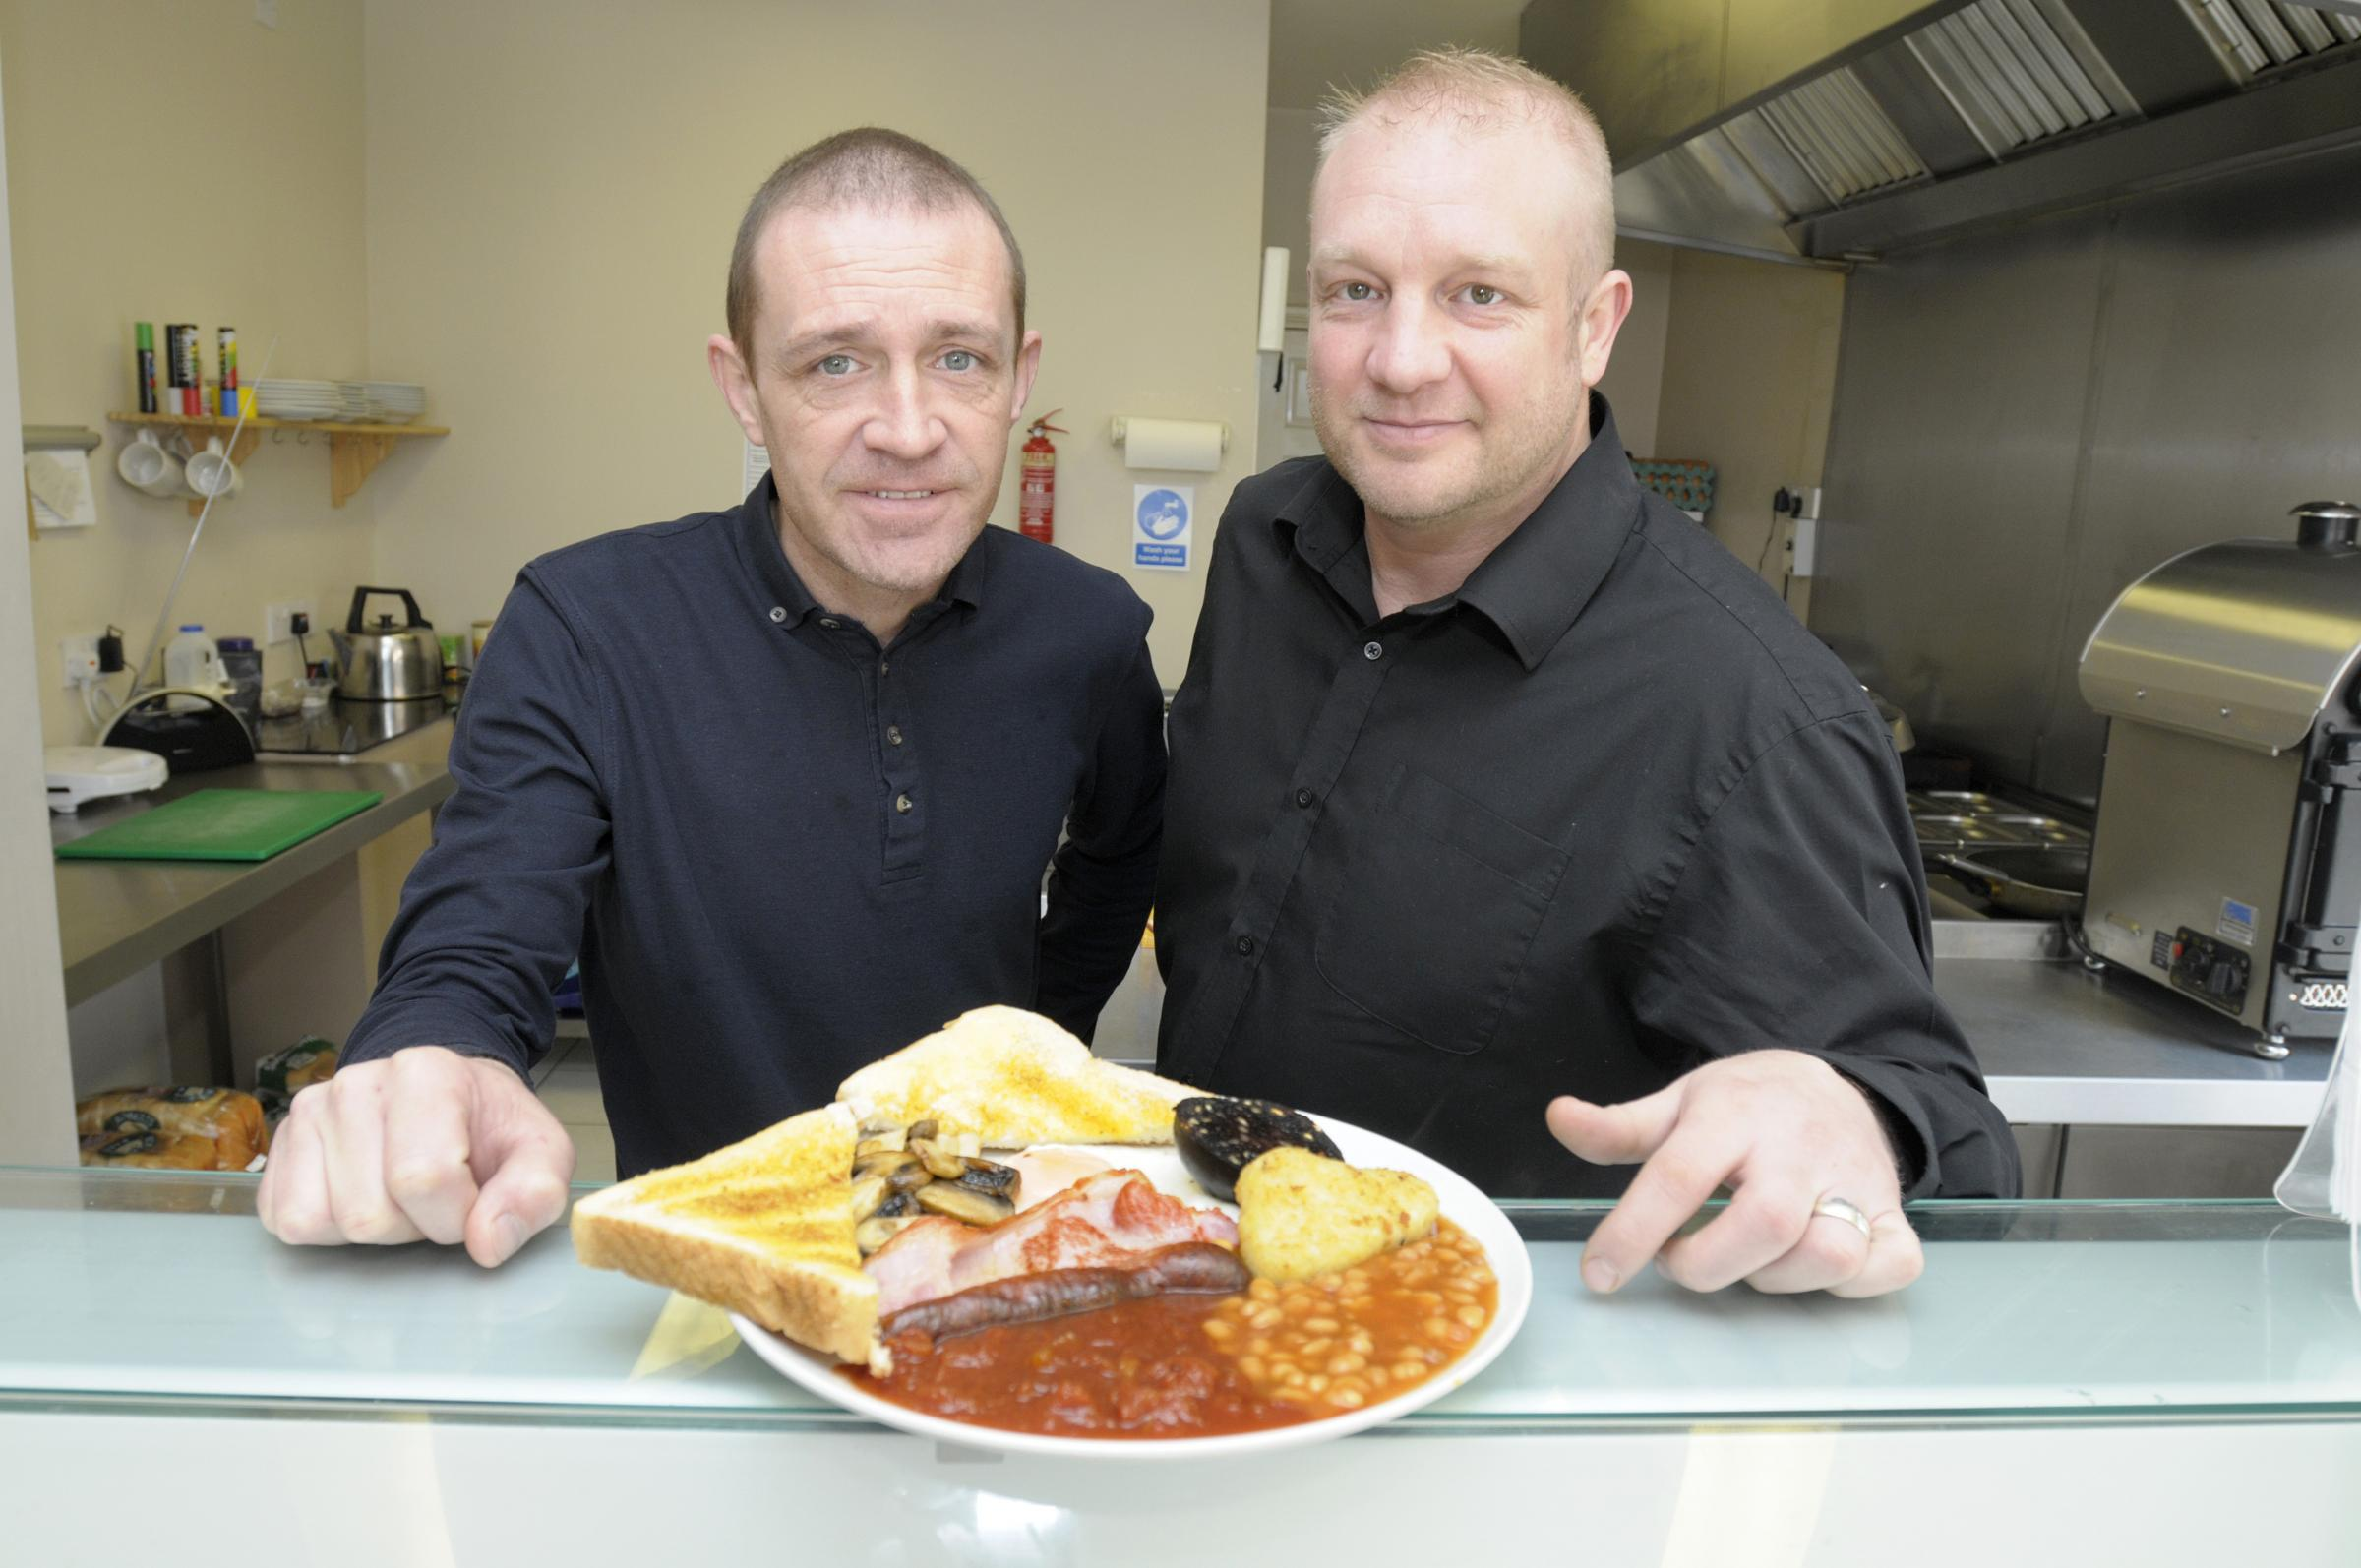 Cafe jumps to five stars in hygiene scores